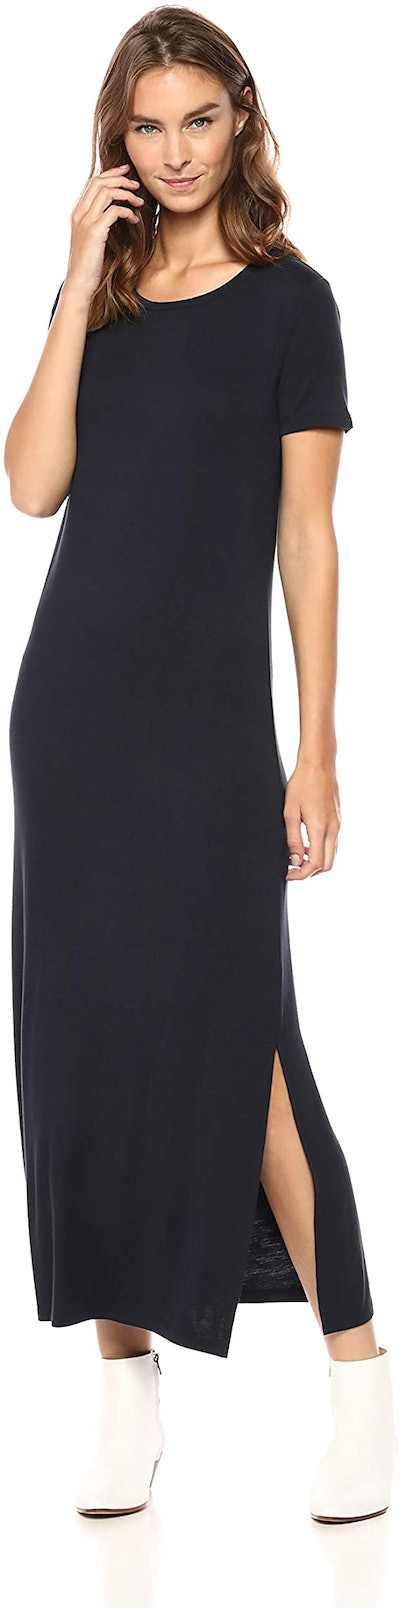 Daily Ritual Jersey Crewneck Short Sleeve Maxi Dress with Side Slit